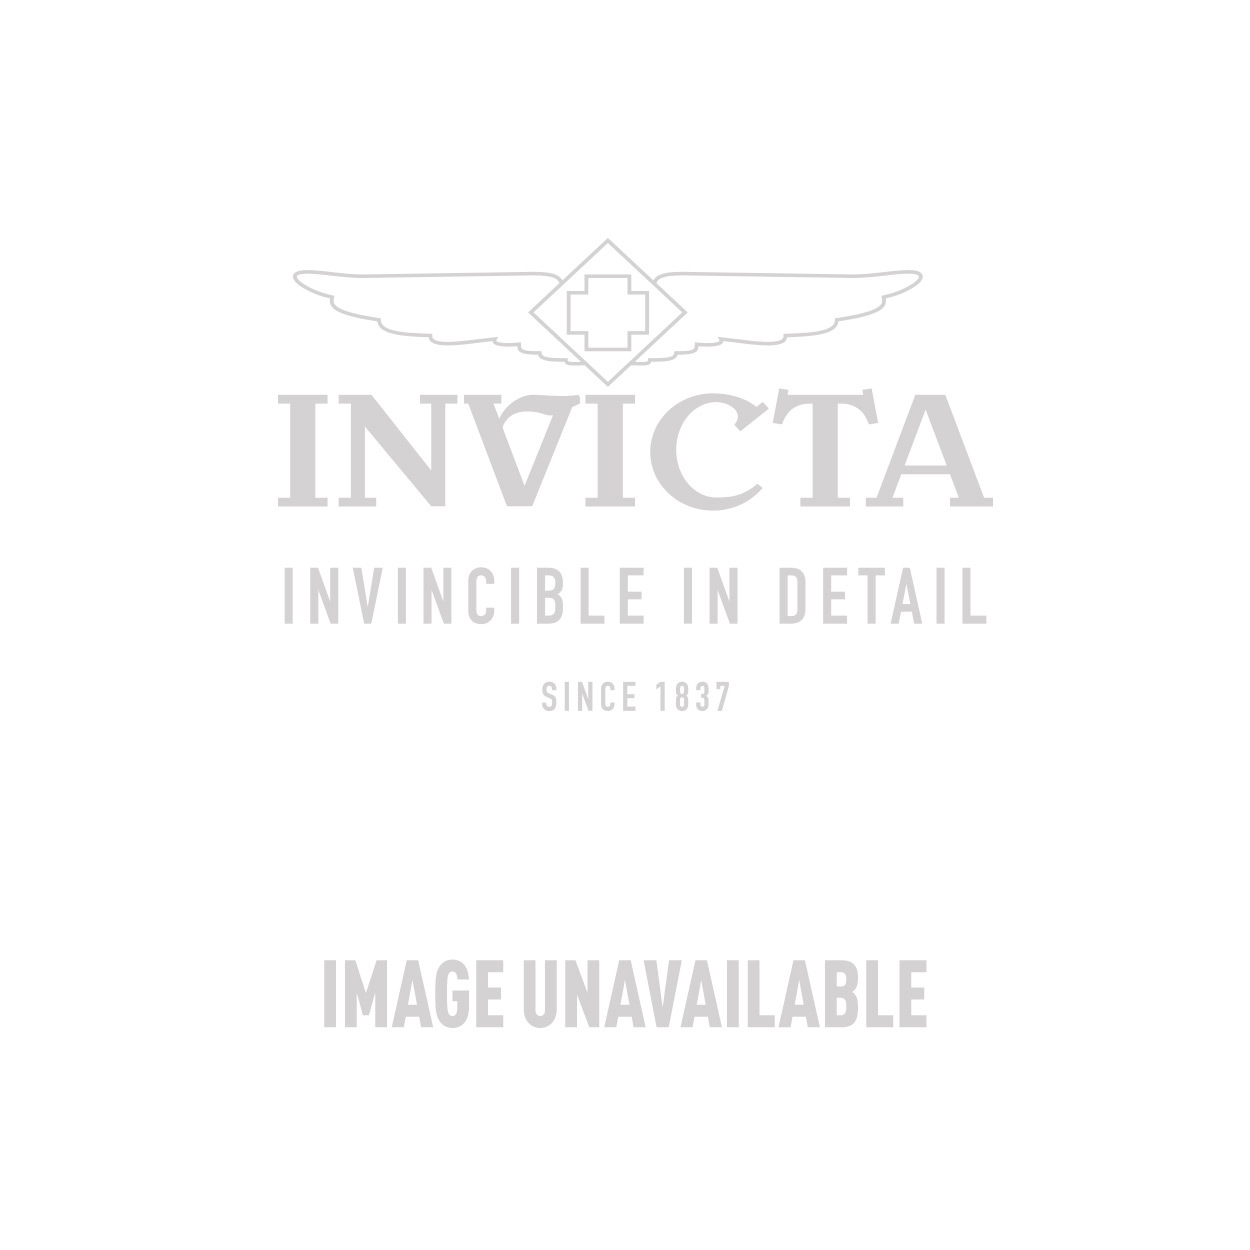 Invicta Vintage Swiss Movement Quartz Watch - Gold case with Red tone Leather band - Model 21527